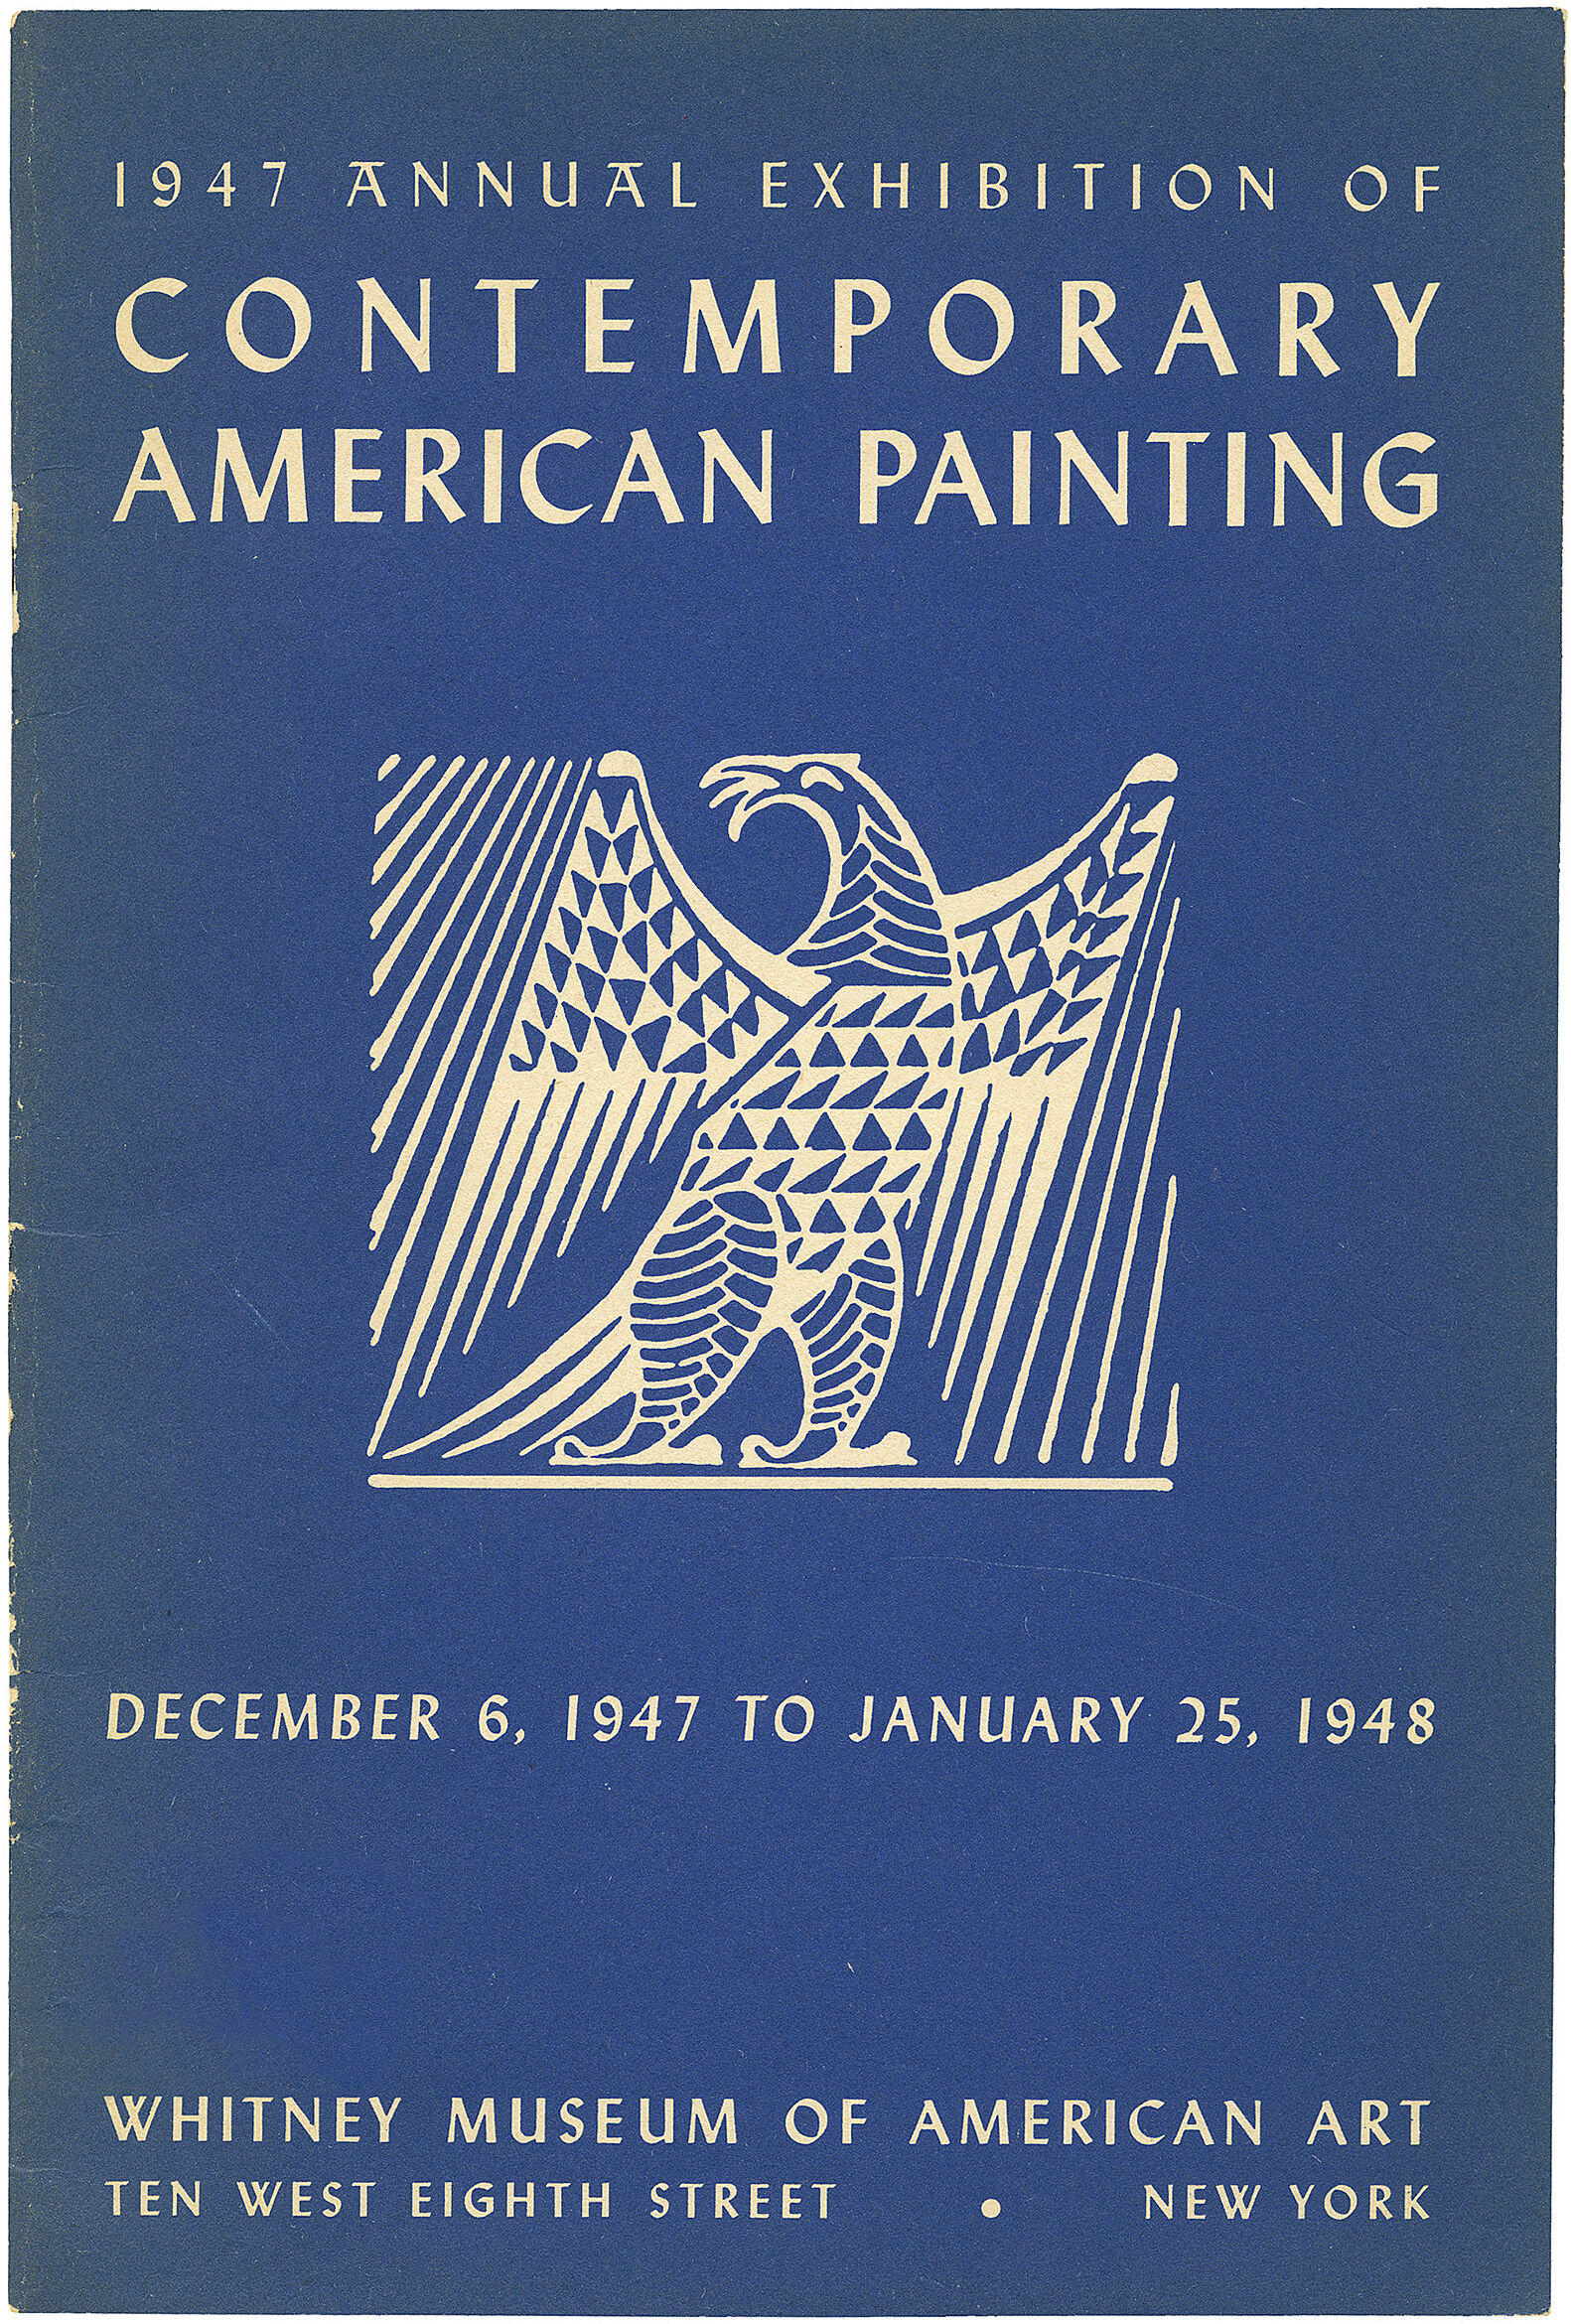 Cover for 1947 Annual Exhibition of Contemporary American Painting catalogue